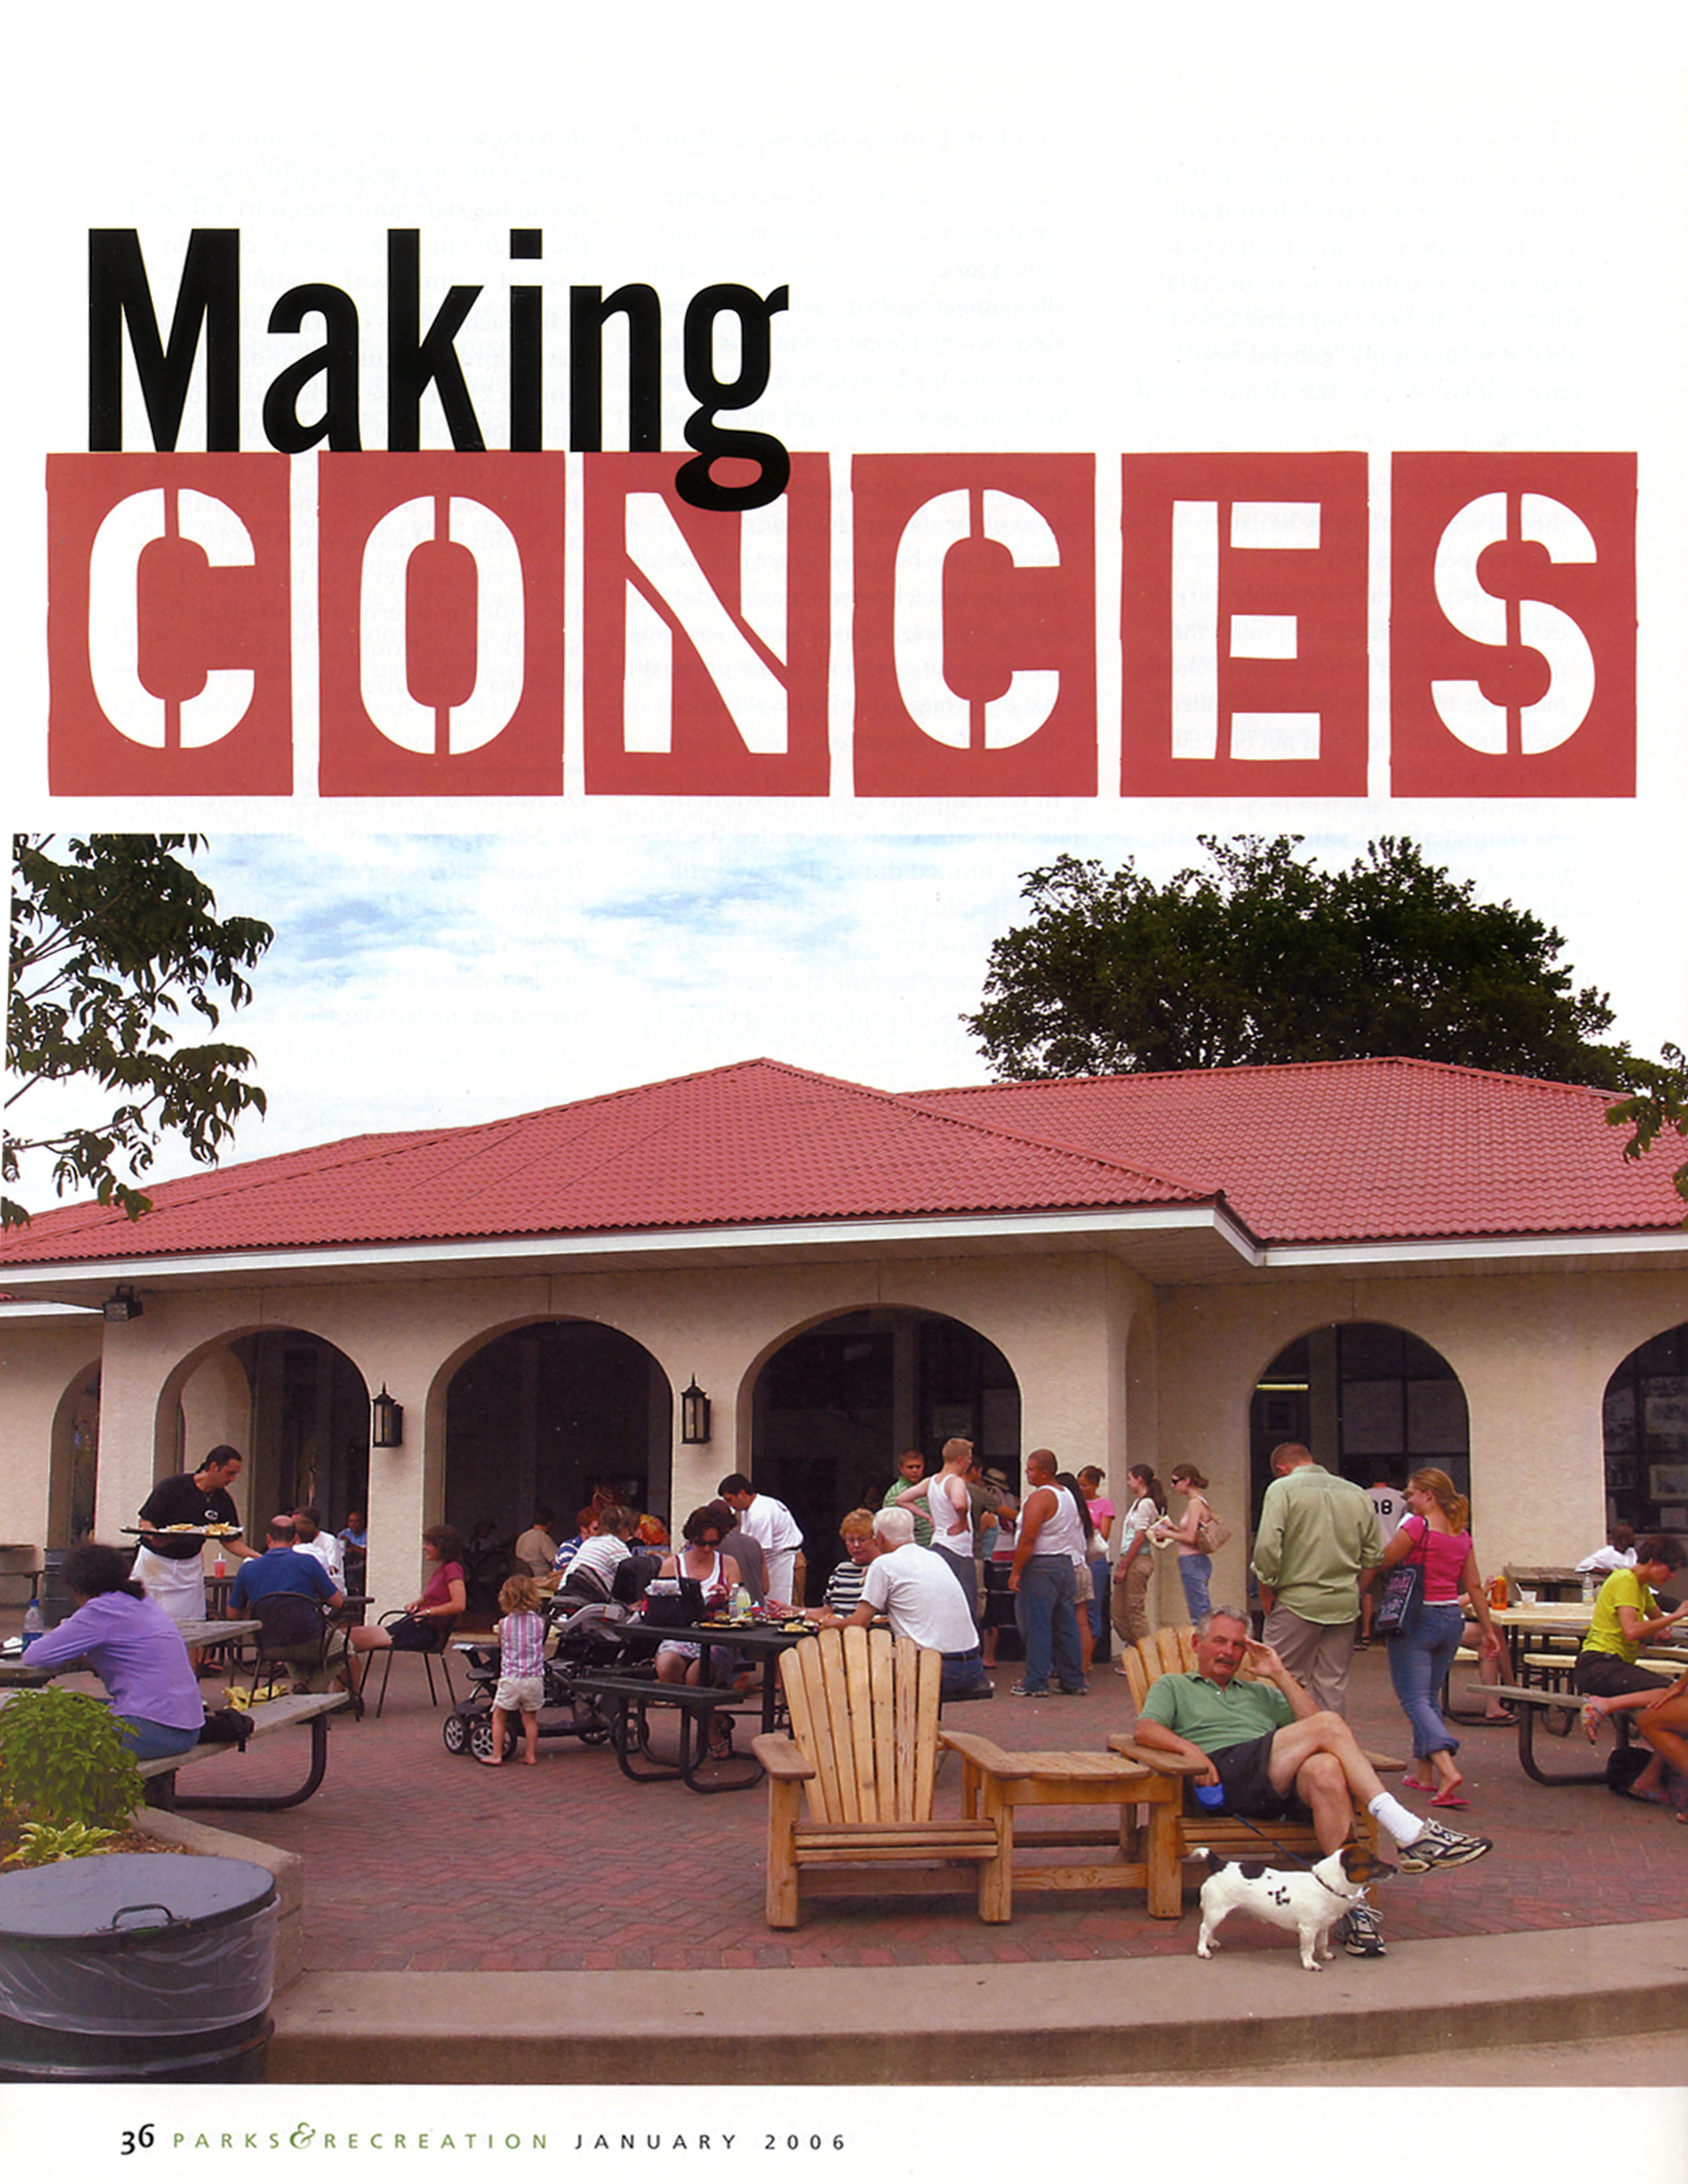 making concessions kitchen design and food and beverage consulting